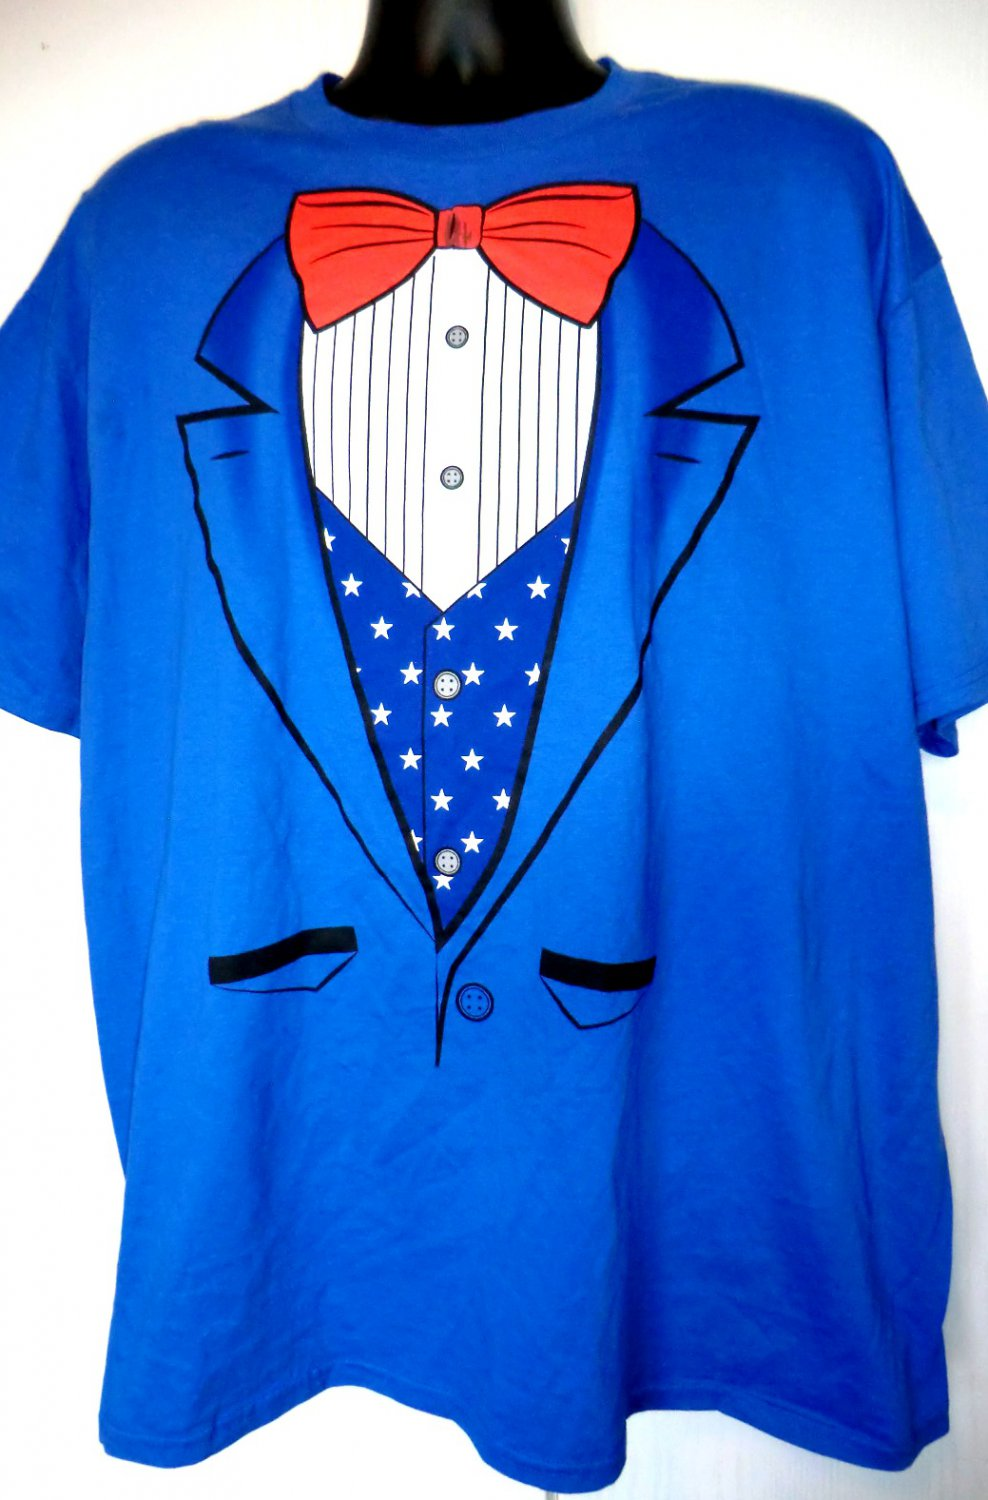 Red white and blue suit bow tie t shirt size xxl for Xxl tall graphic t shirts